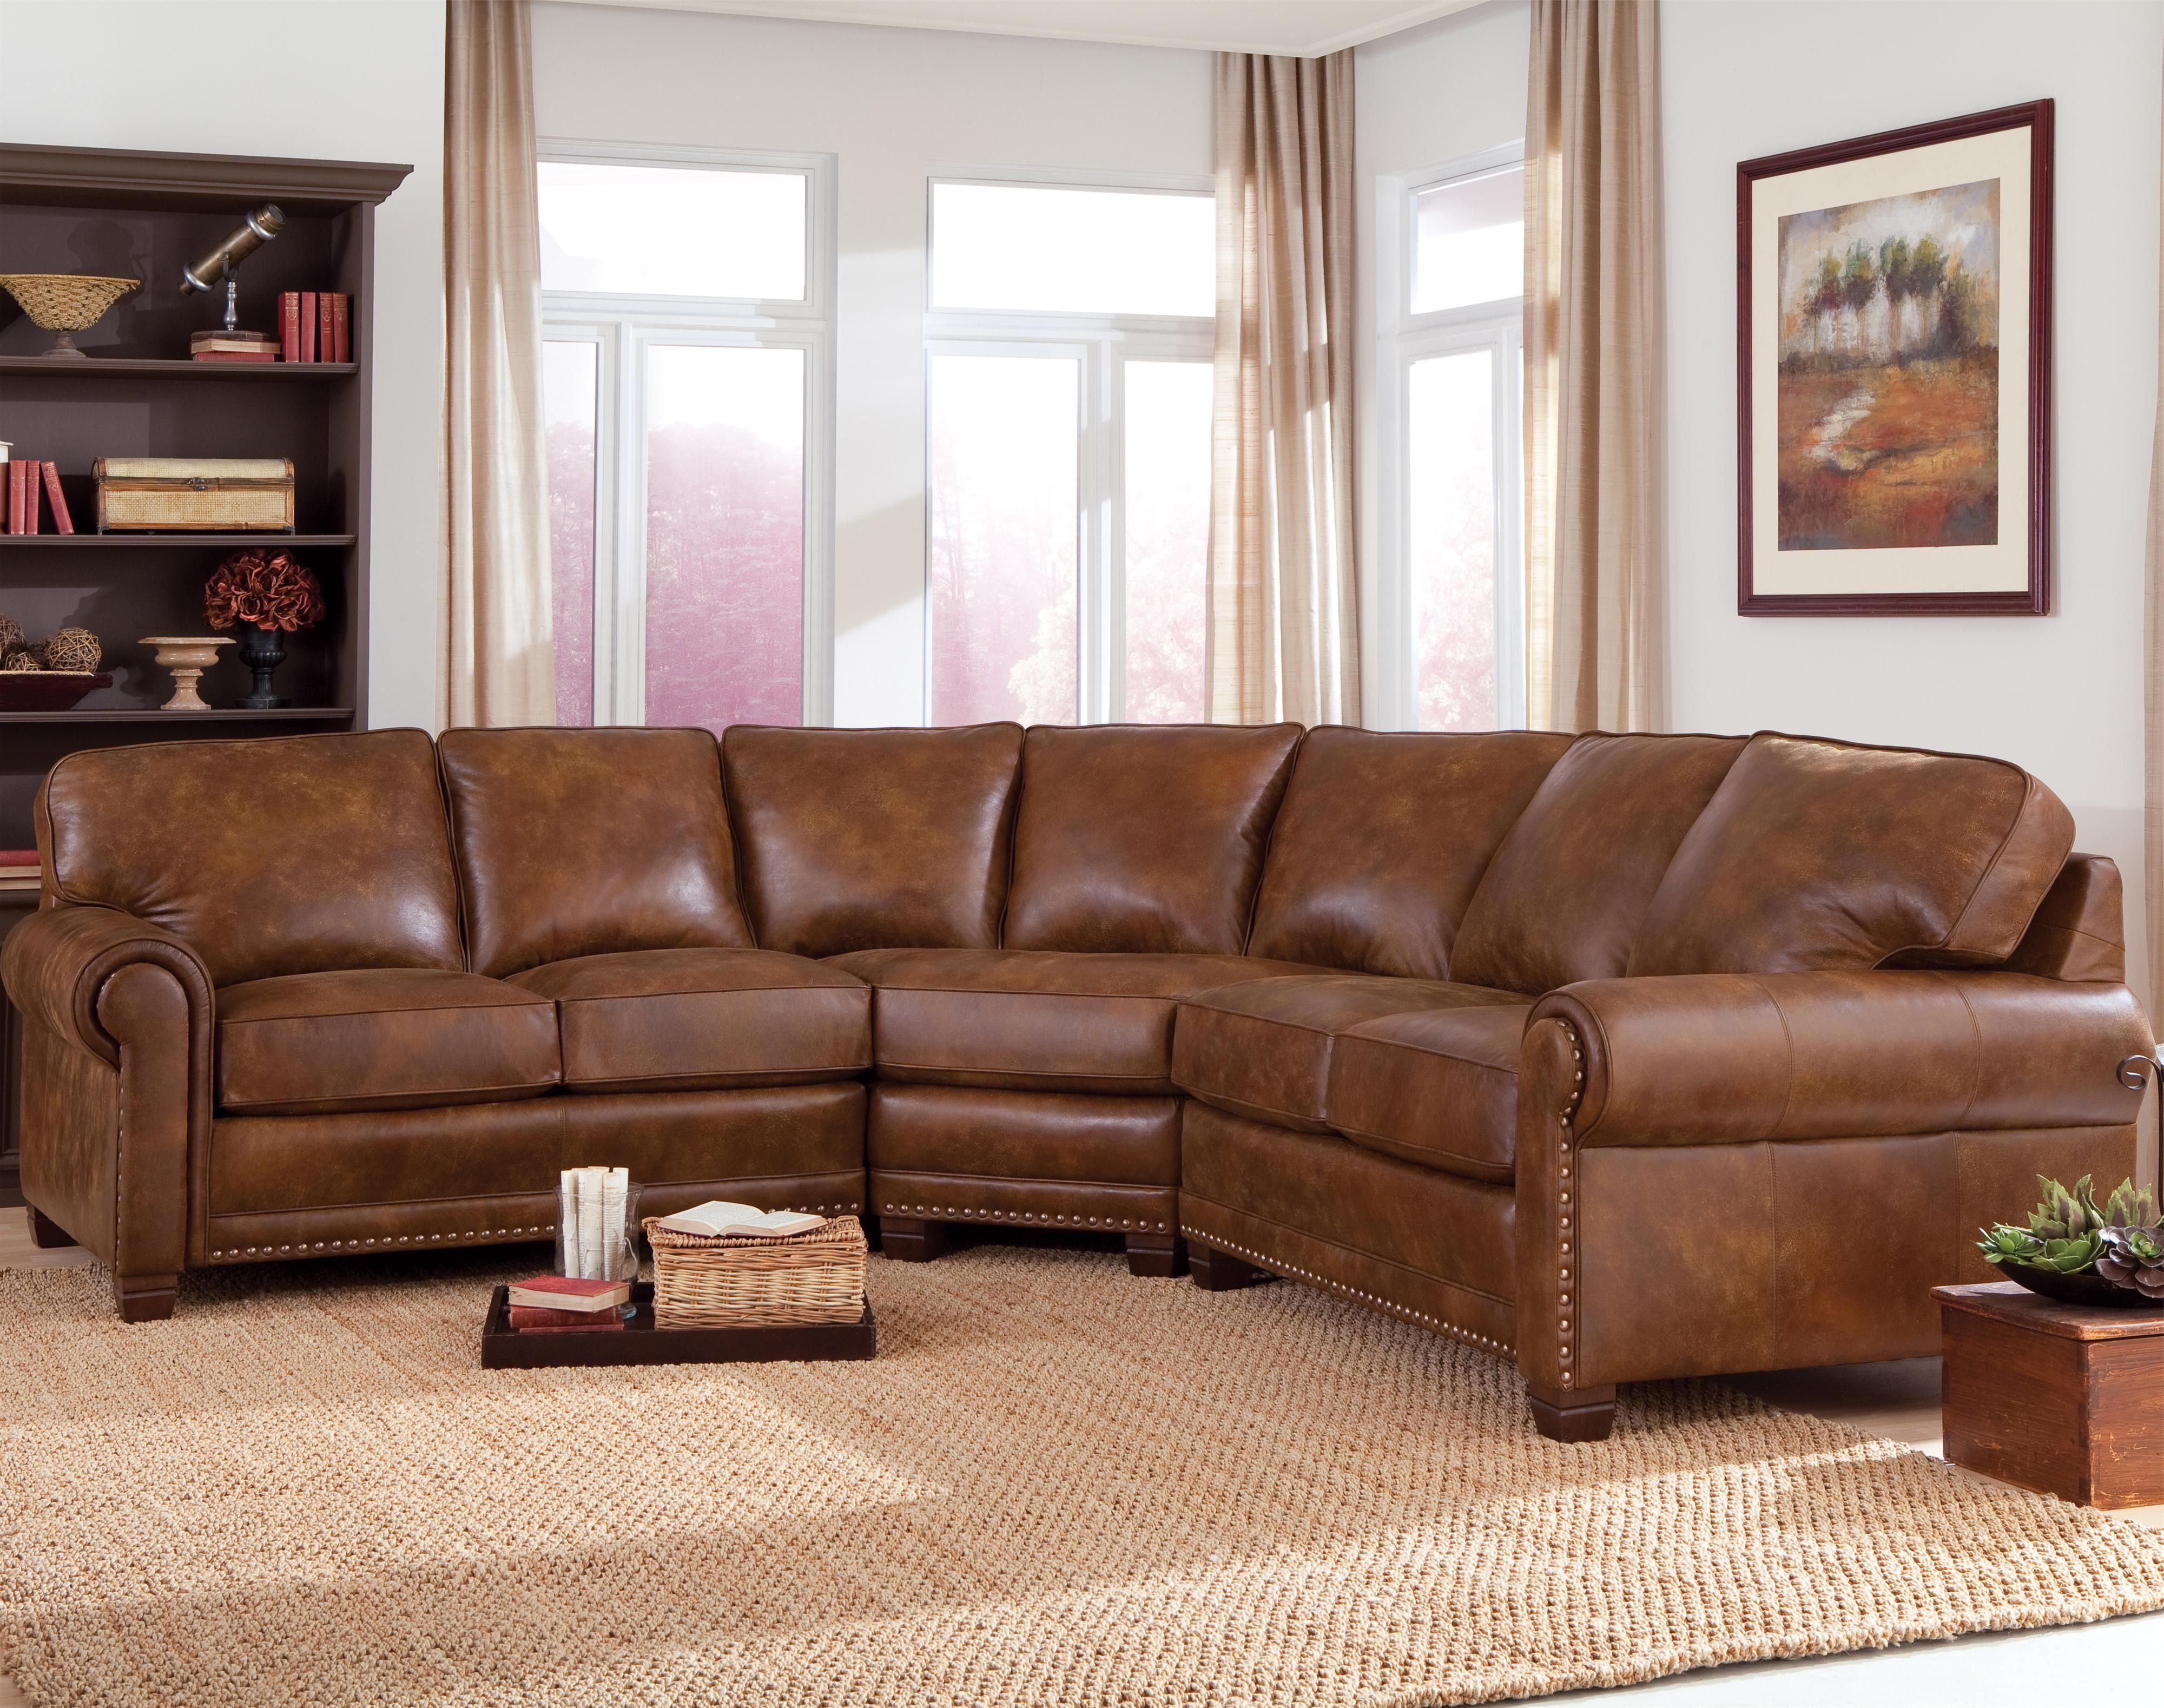 Nice Amazing Curved Leather Sectional Sofa 16 For Home